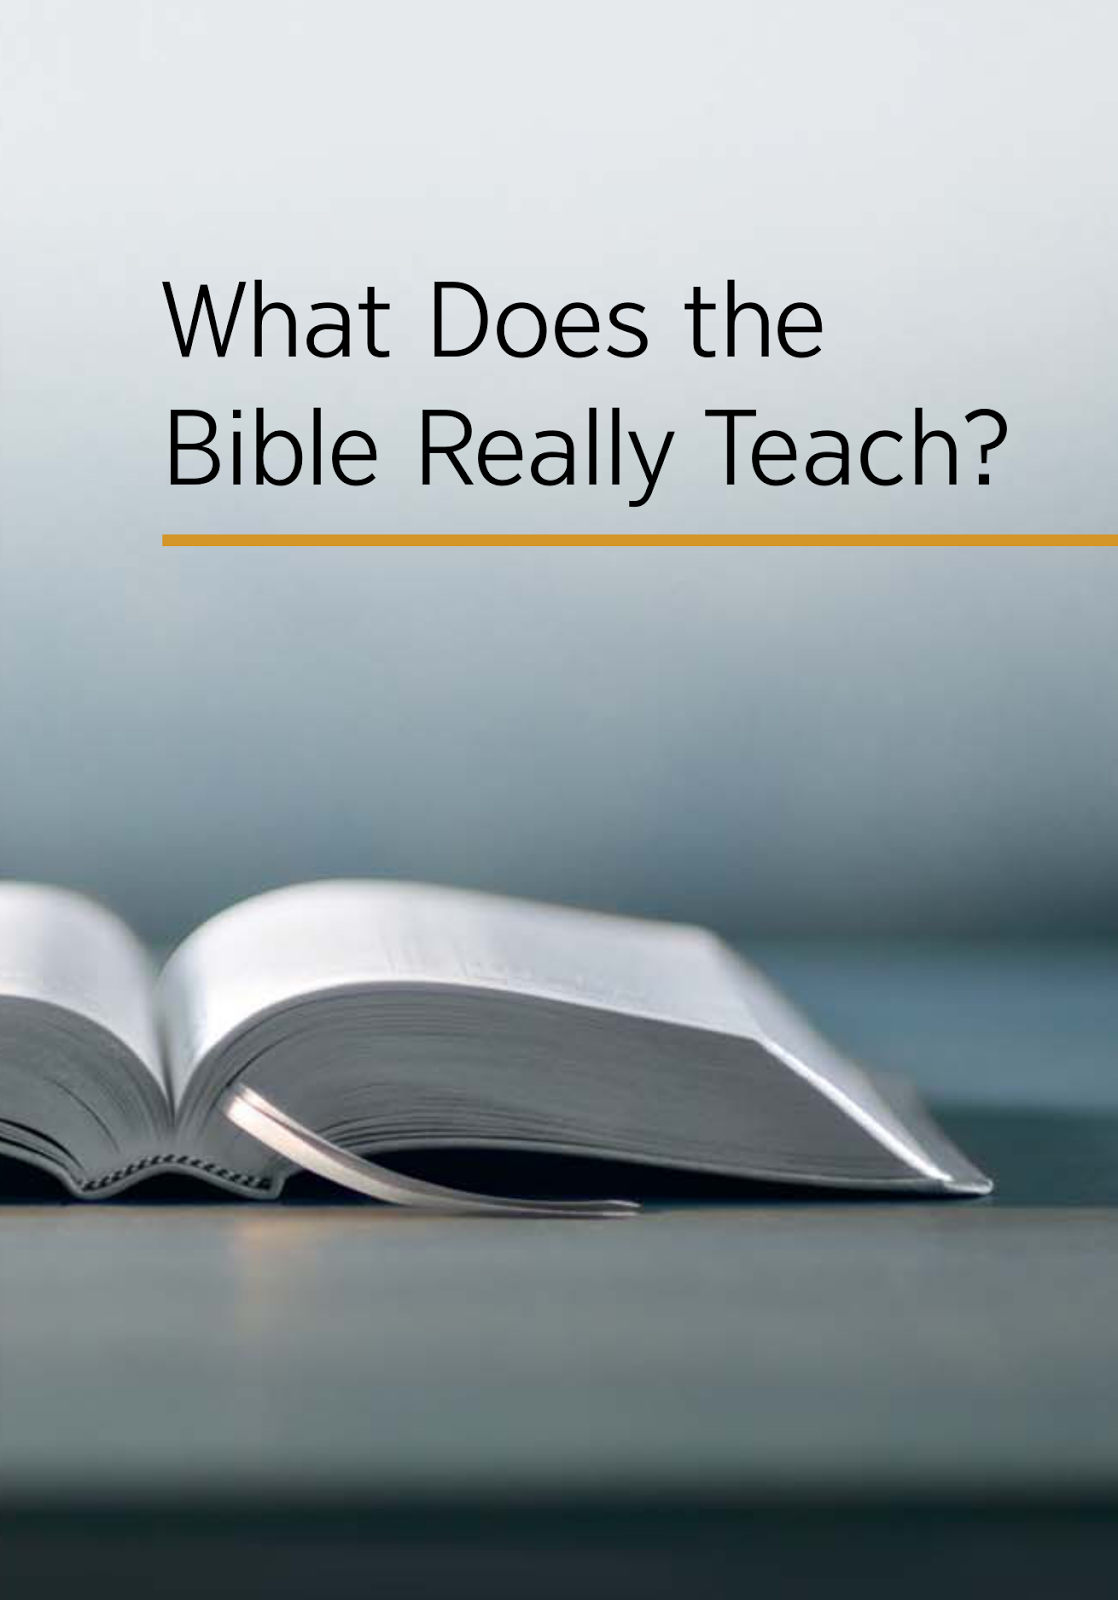 essay bible means me Free bible papers, essays, and research papers these results are sorted by most relevant first (ranked search) you may also sort these by color rating or essay length.